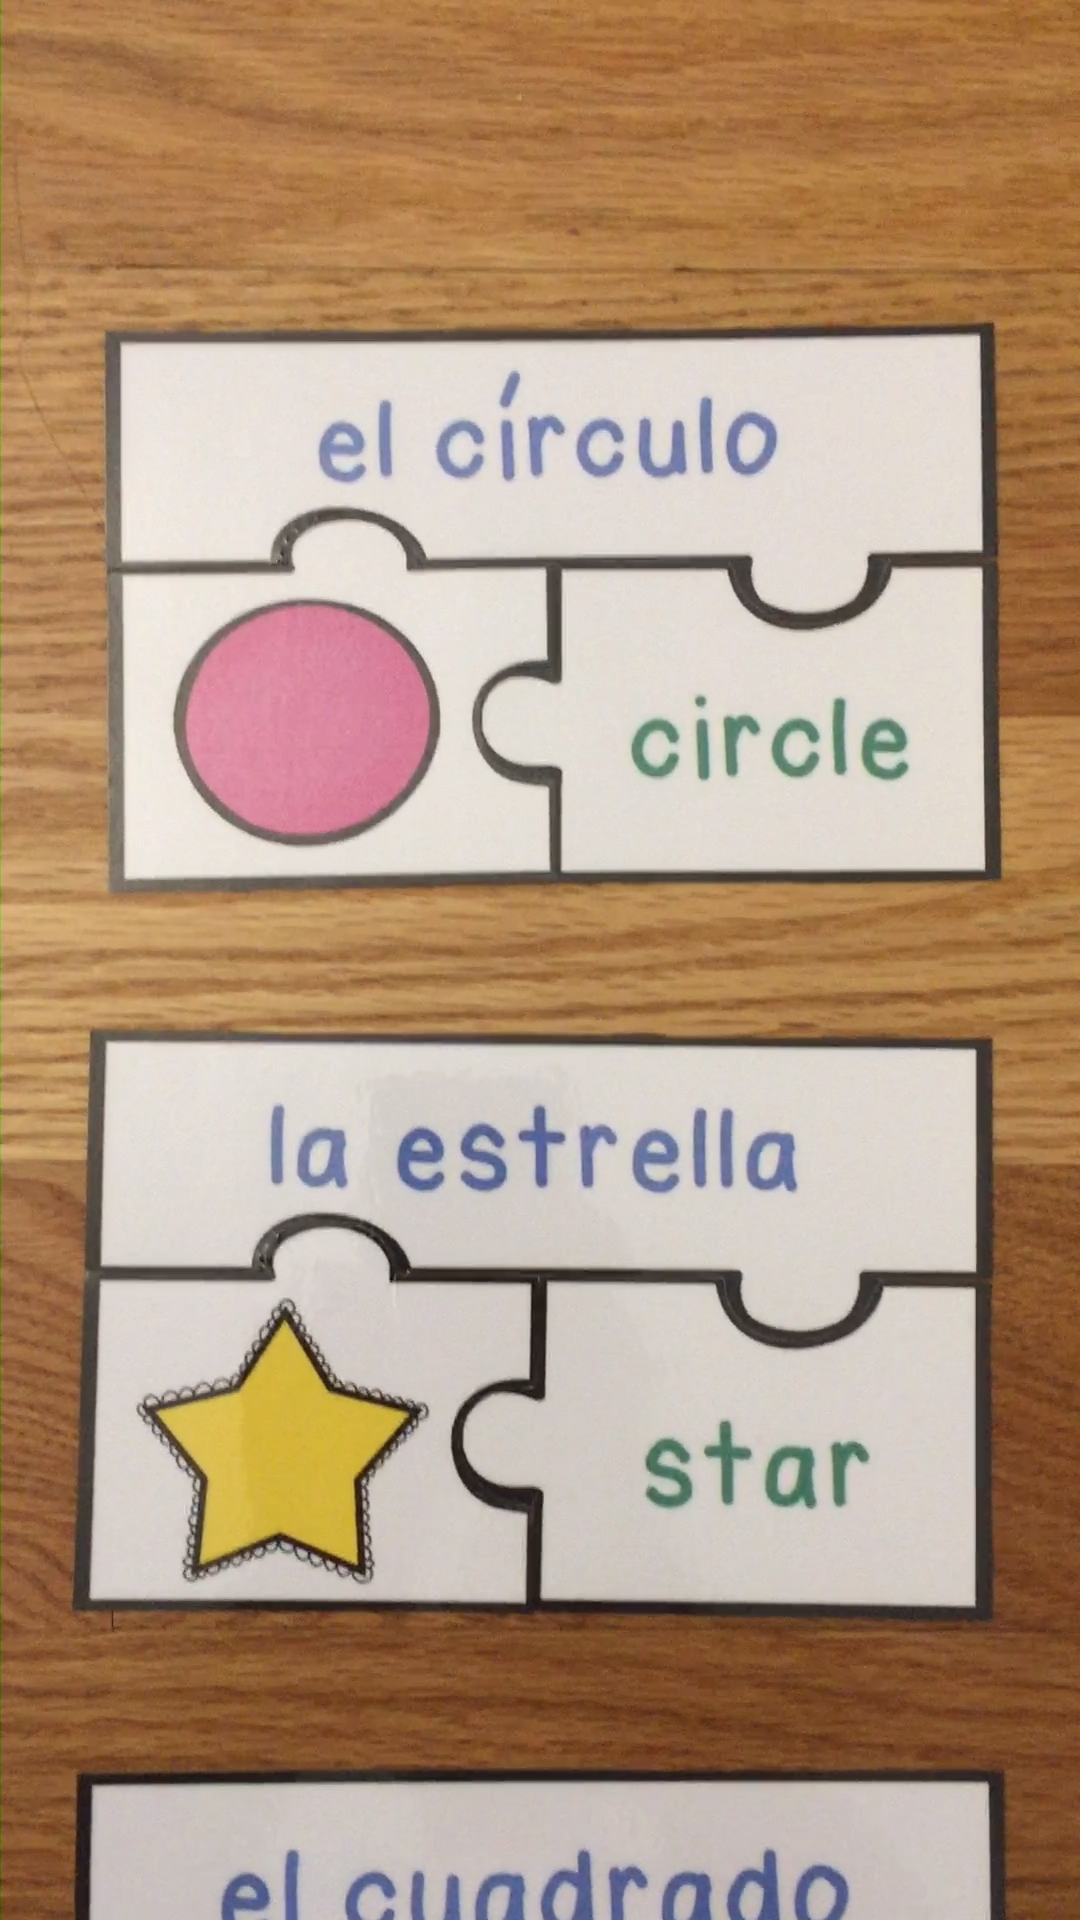 Spanish Shapes Game Puzzles ESL Activity for Beginners Las Formas Espanol